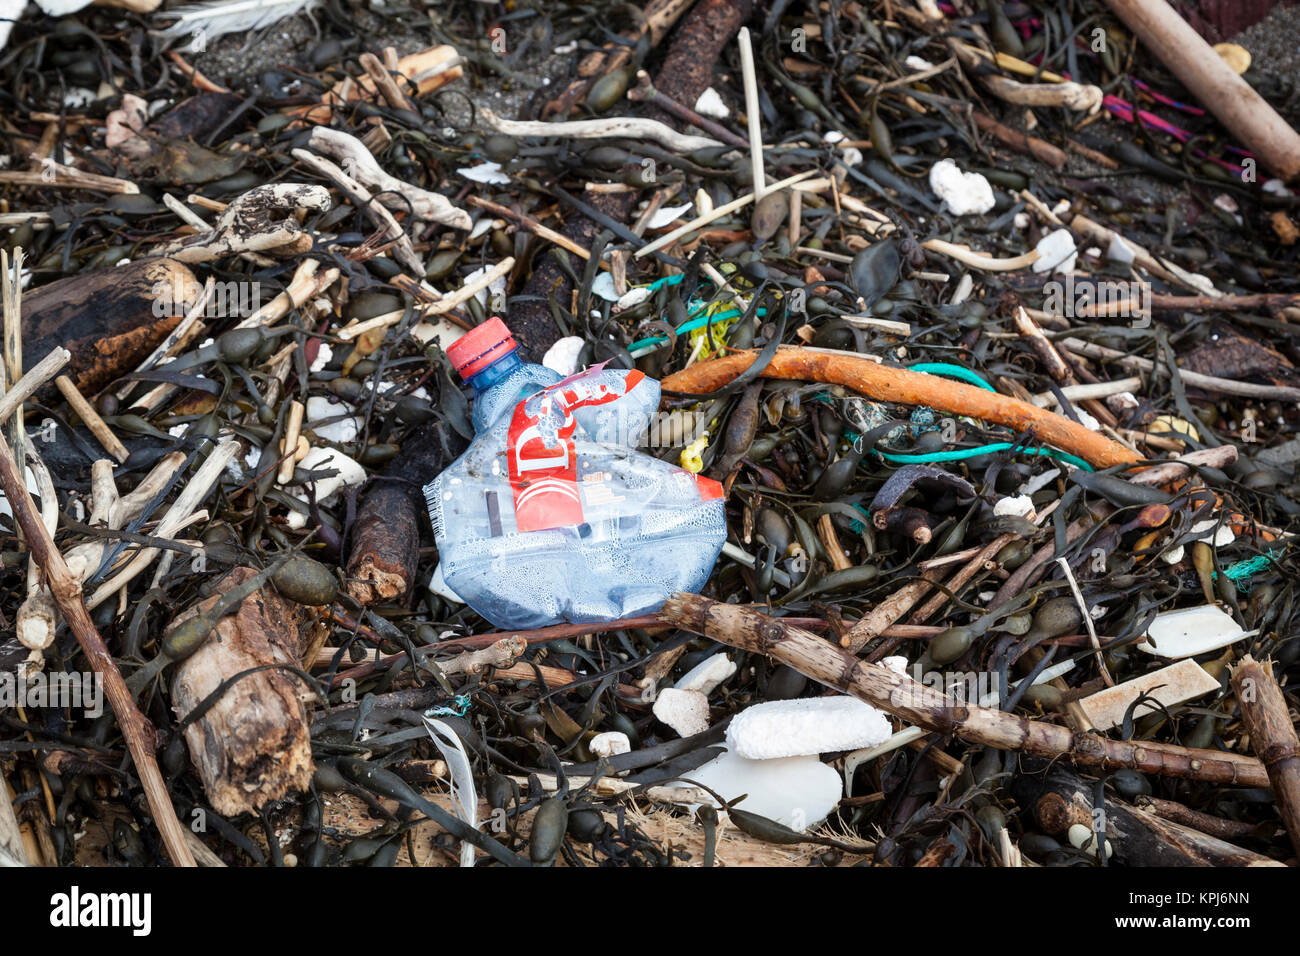 Plastic bottle and polystyrene lying on a beach amidst dry seaweed. - Stock Image